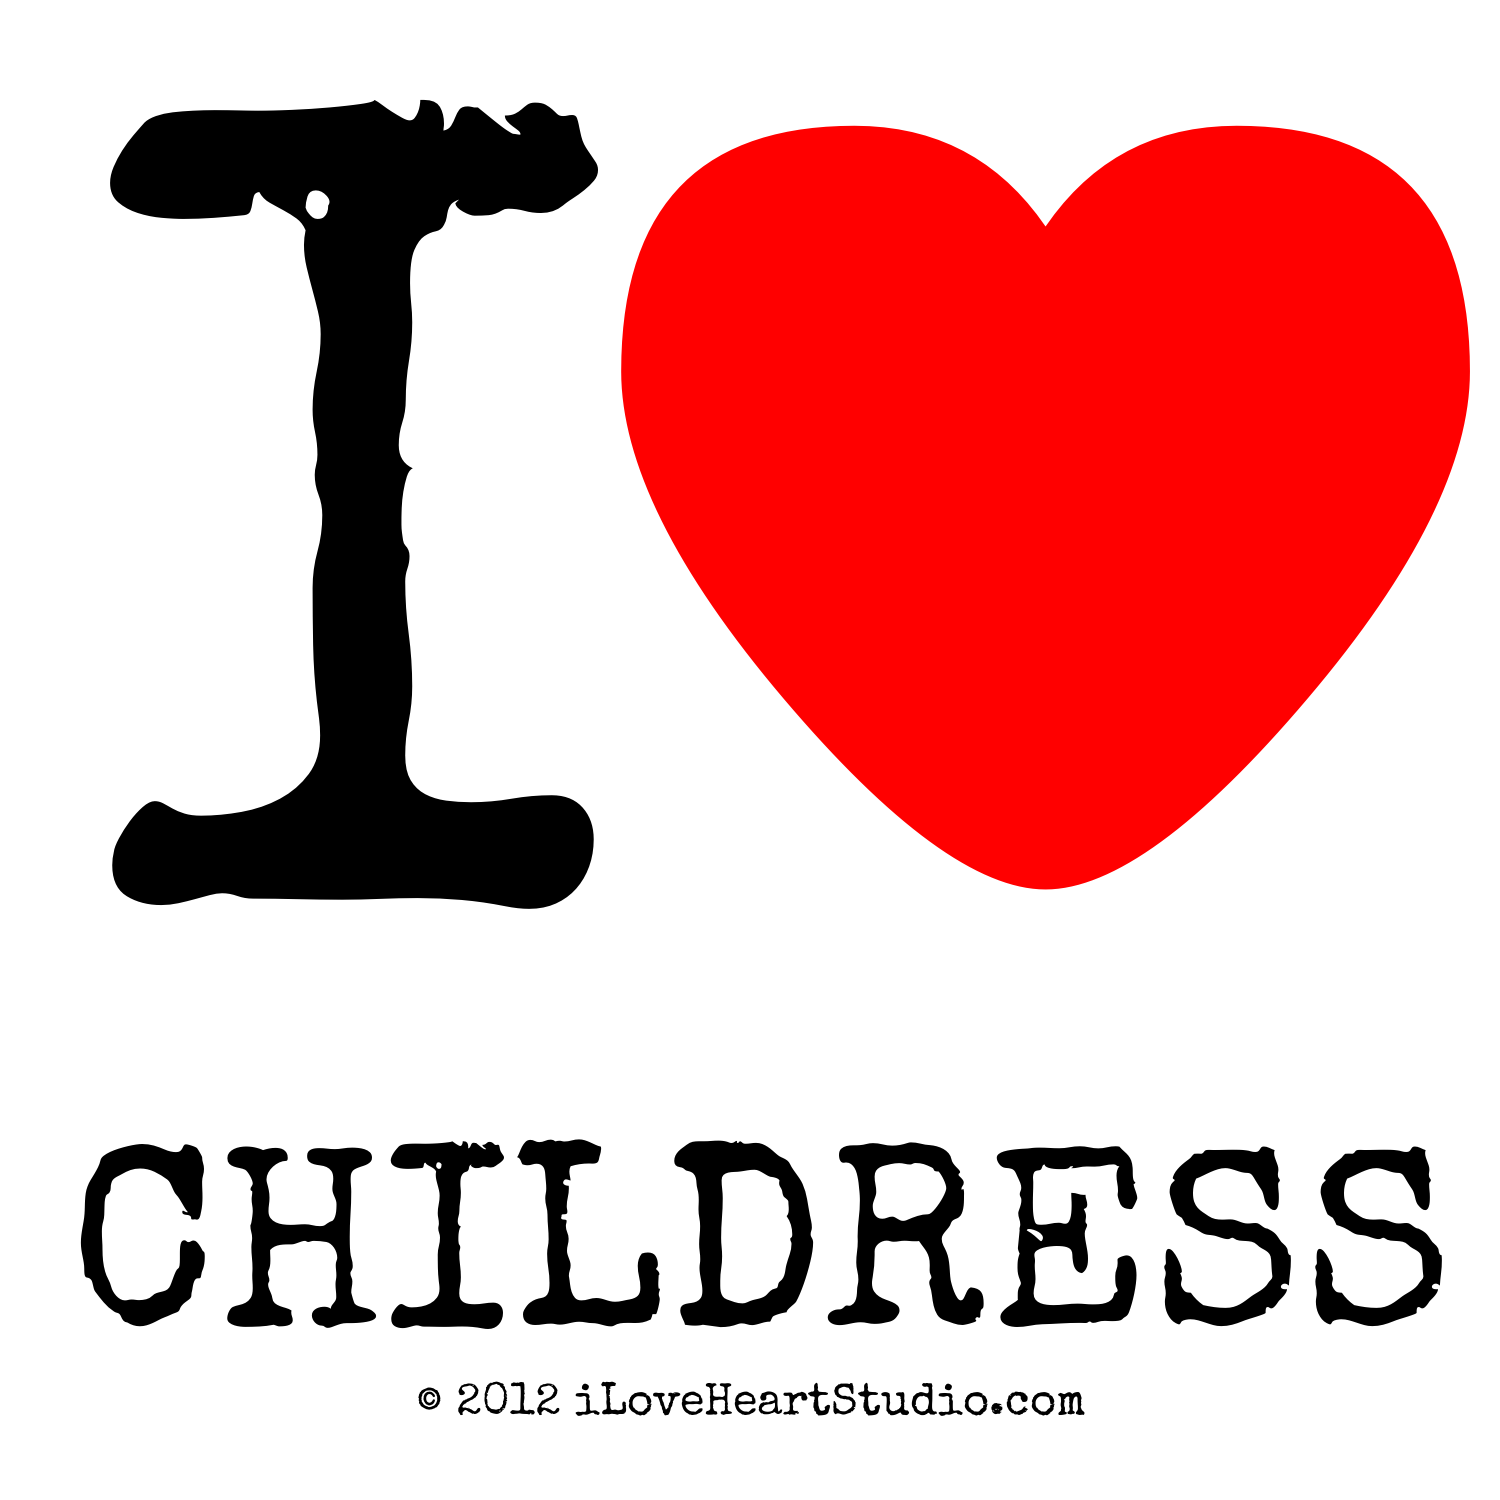 I love heart childress design on poster mug t shirt and many more iloveheartstudio com i love